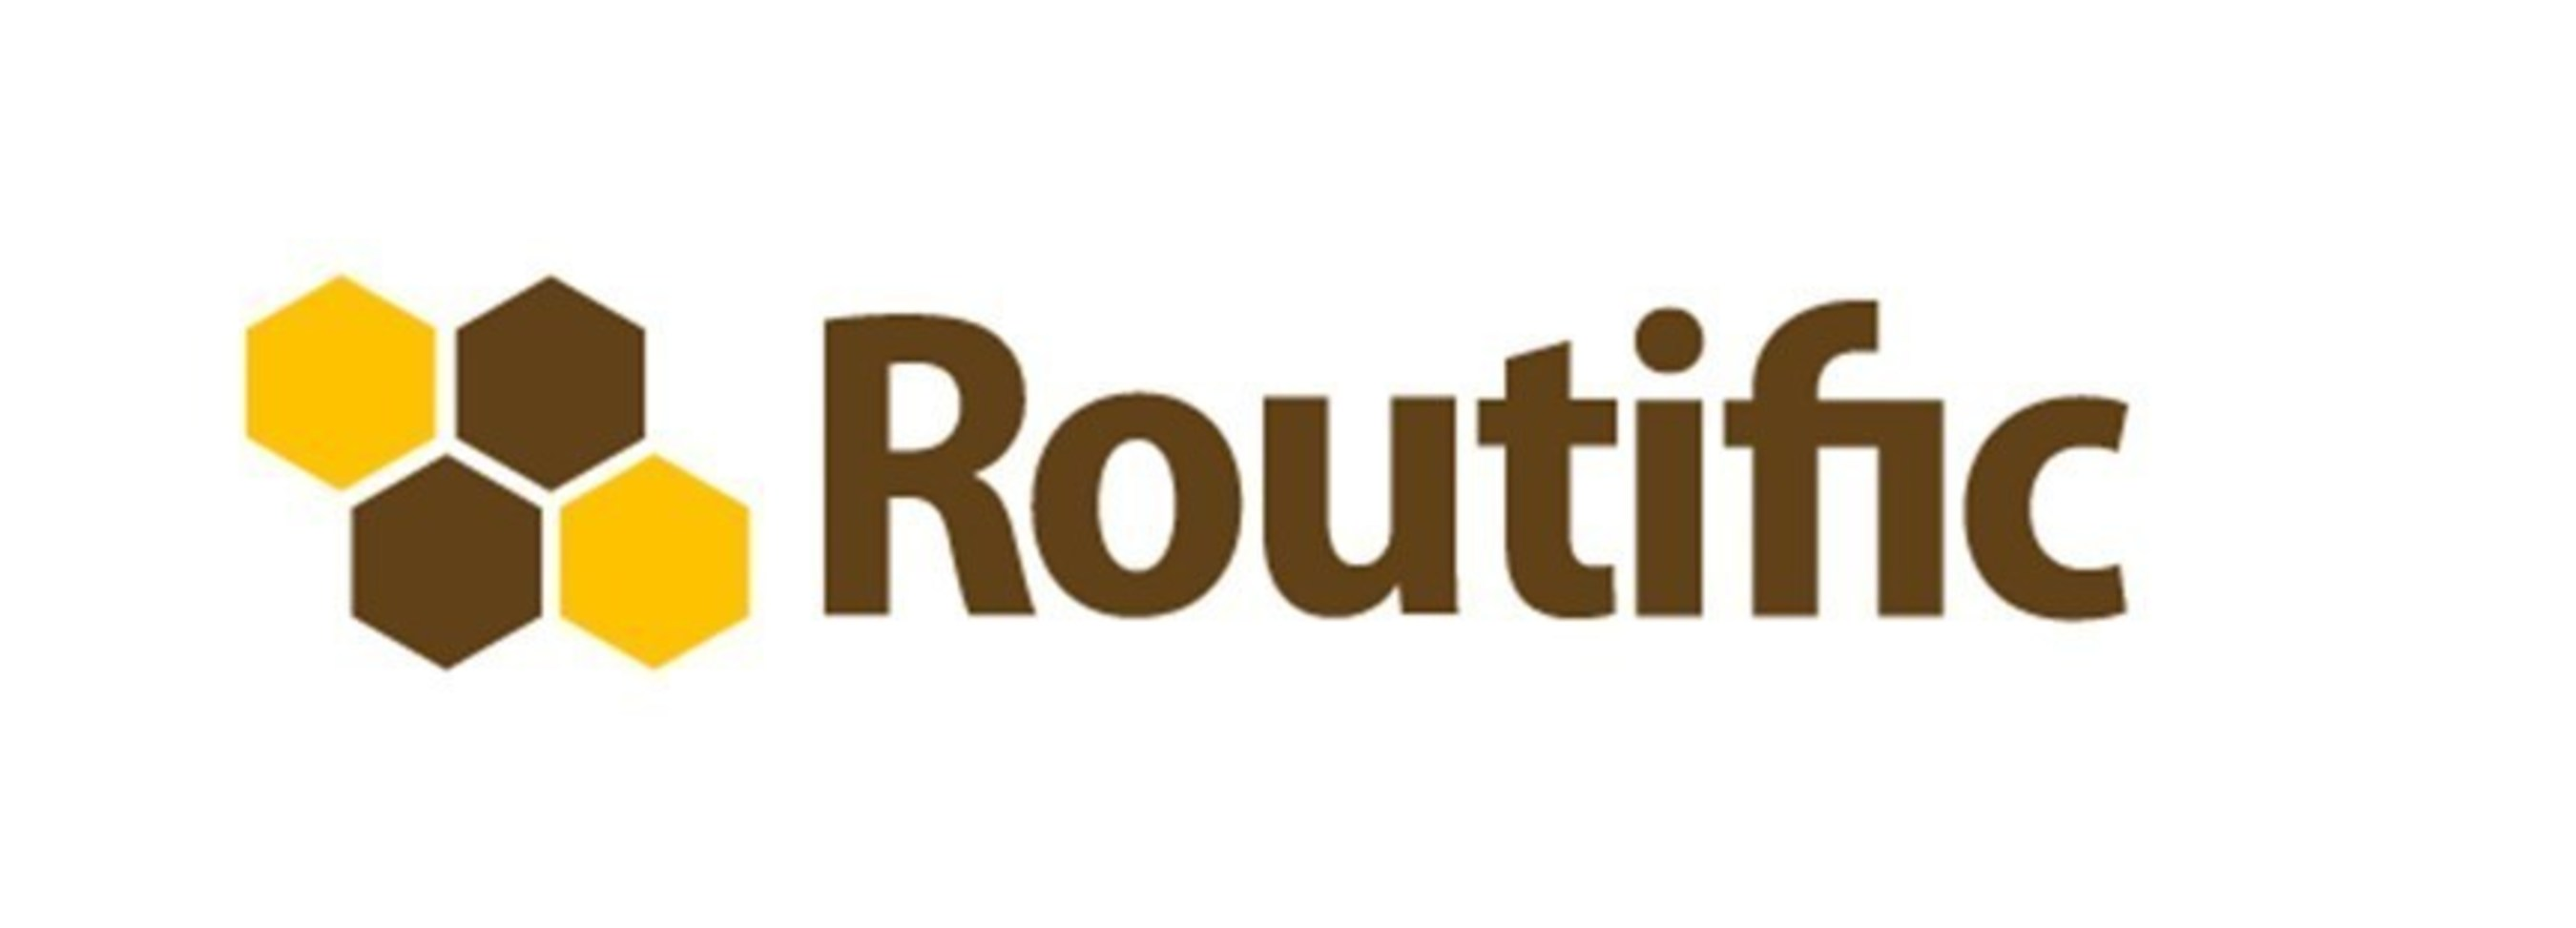 Routific's breakthrough algorithms inspired by honey bee optimization